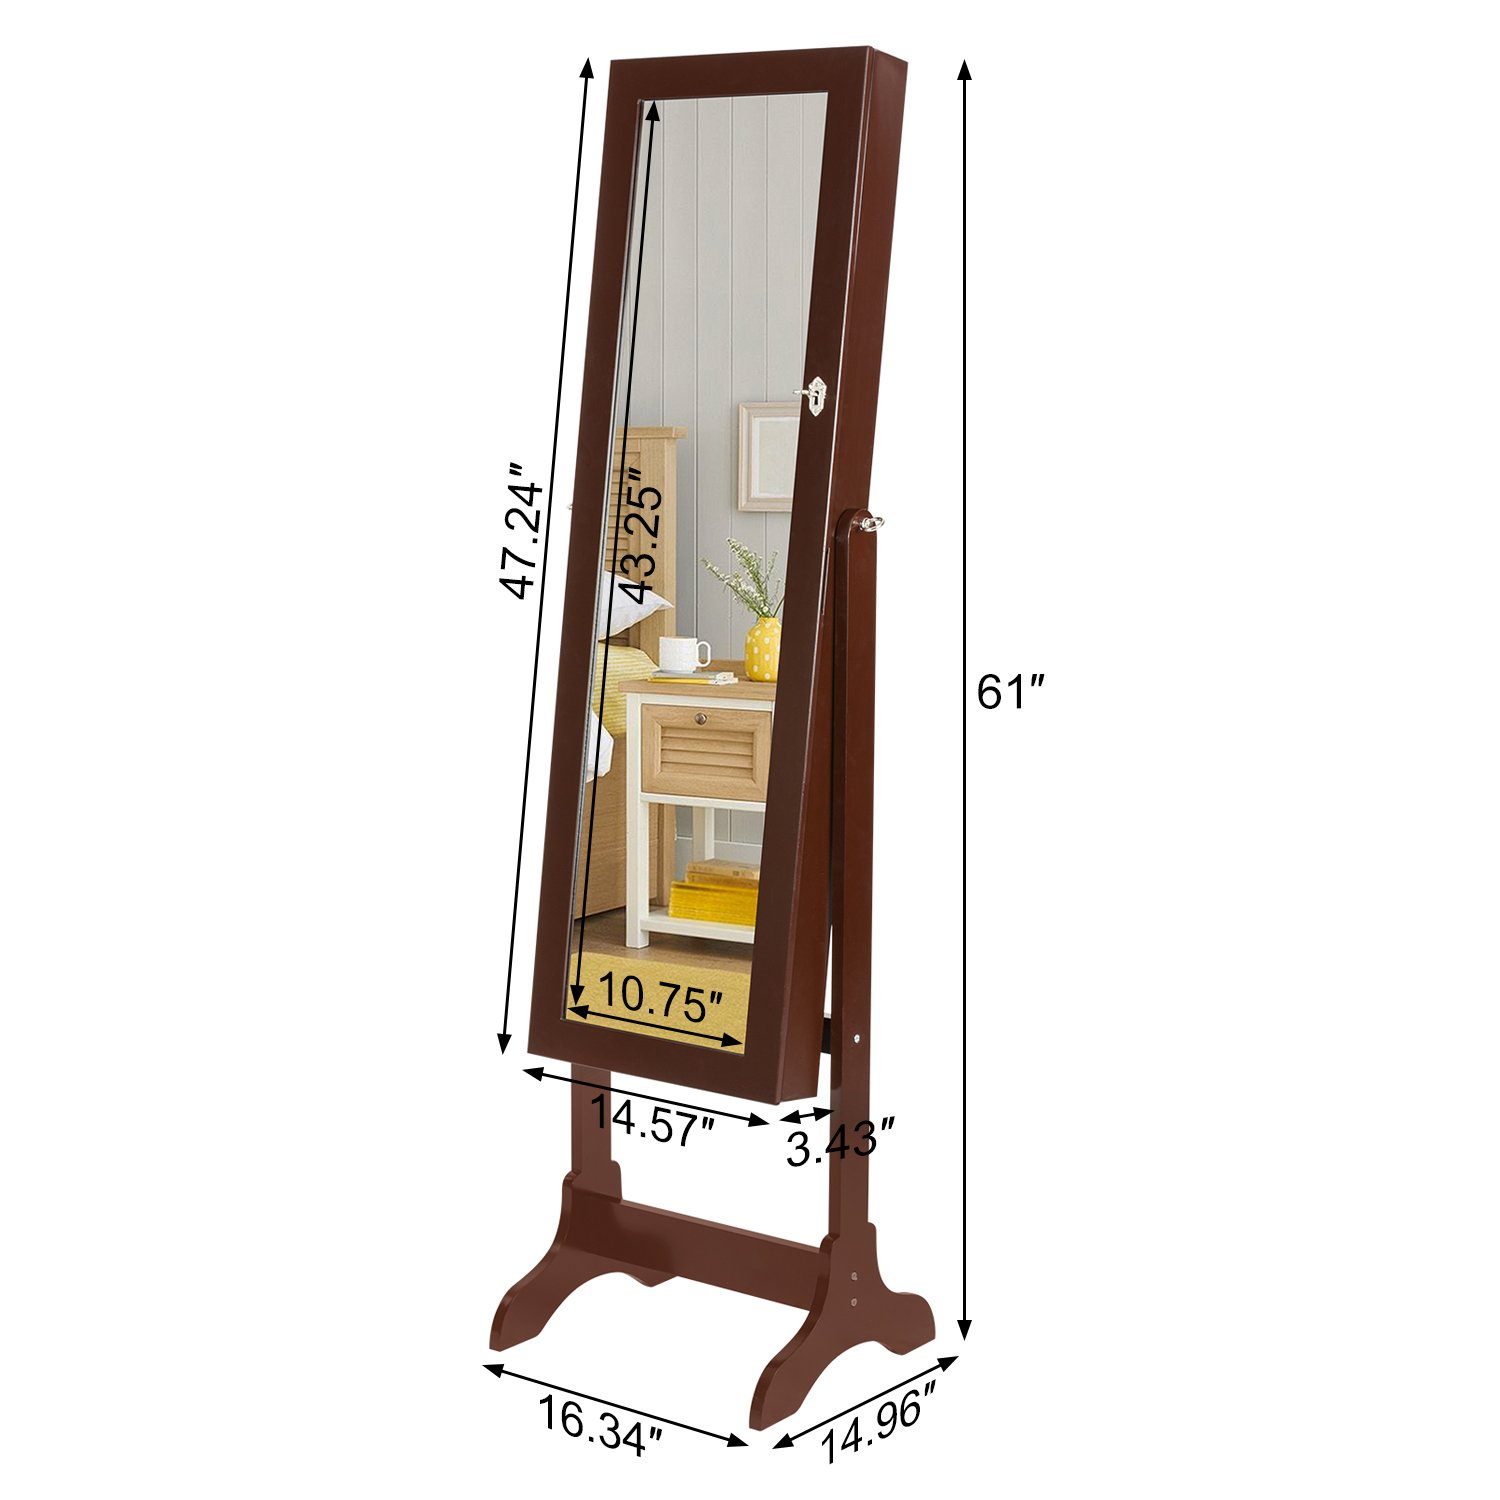 HollyHOME Mirrored Jewelry Cabinet Lockable Standing Jewelry Armoire Holder Organizer with LED Lights, 4 Angle Adjustable, Brown by HollyHOME (Image #7)